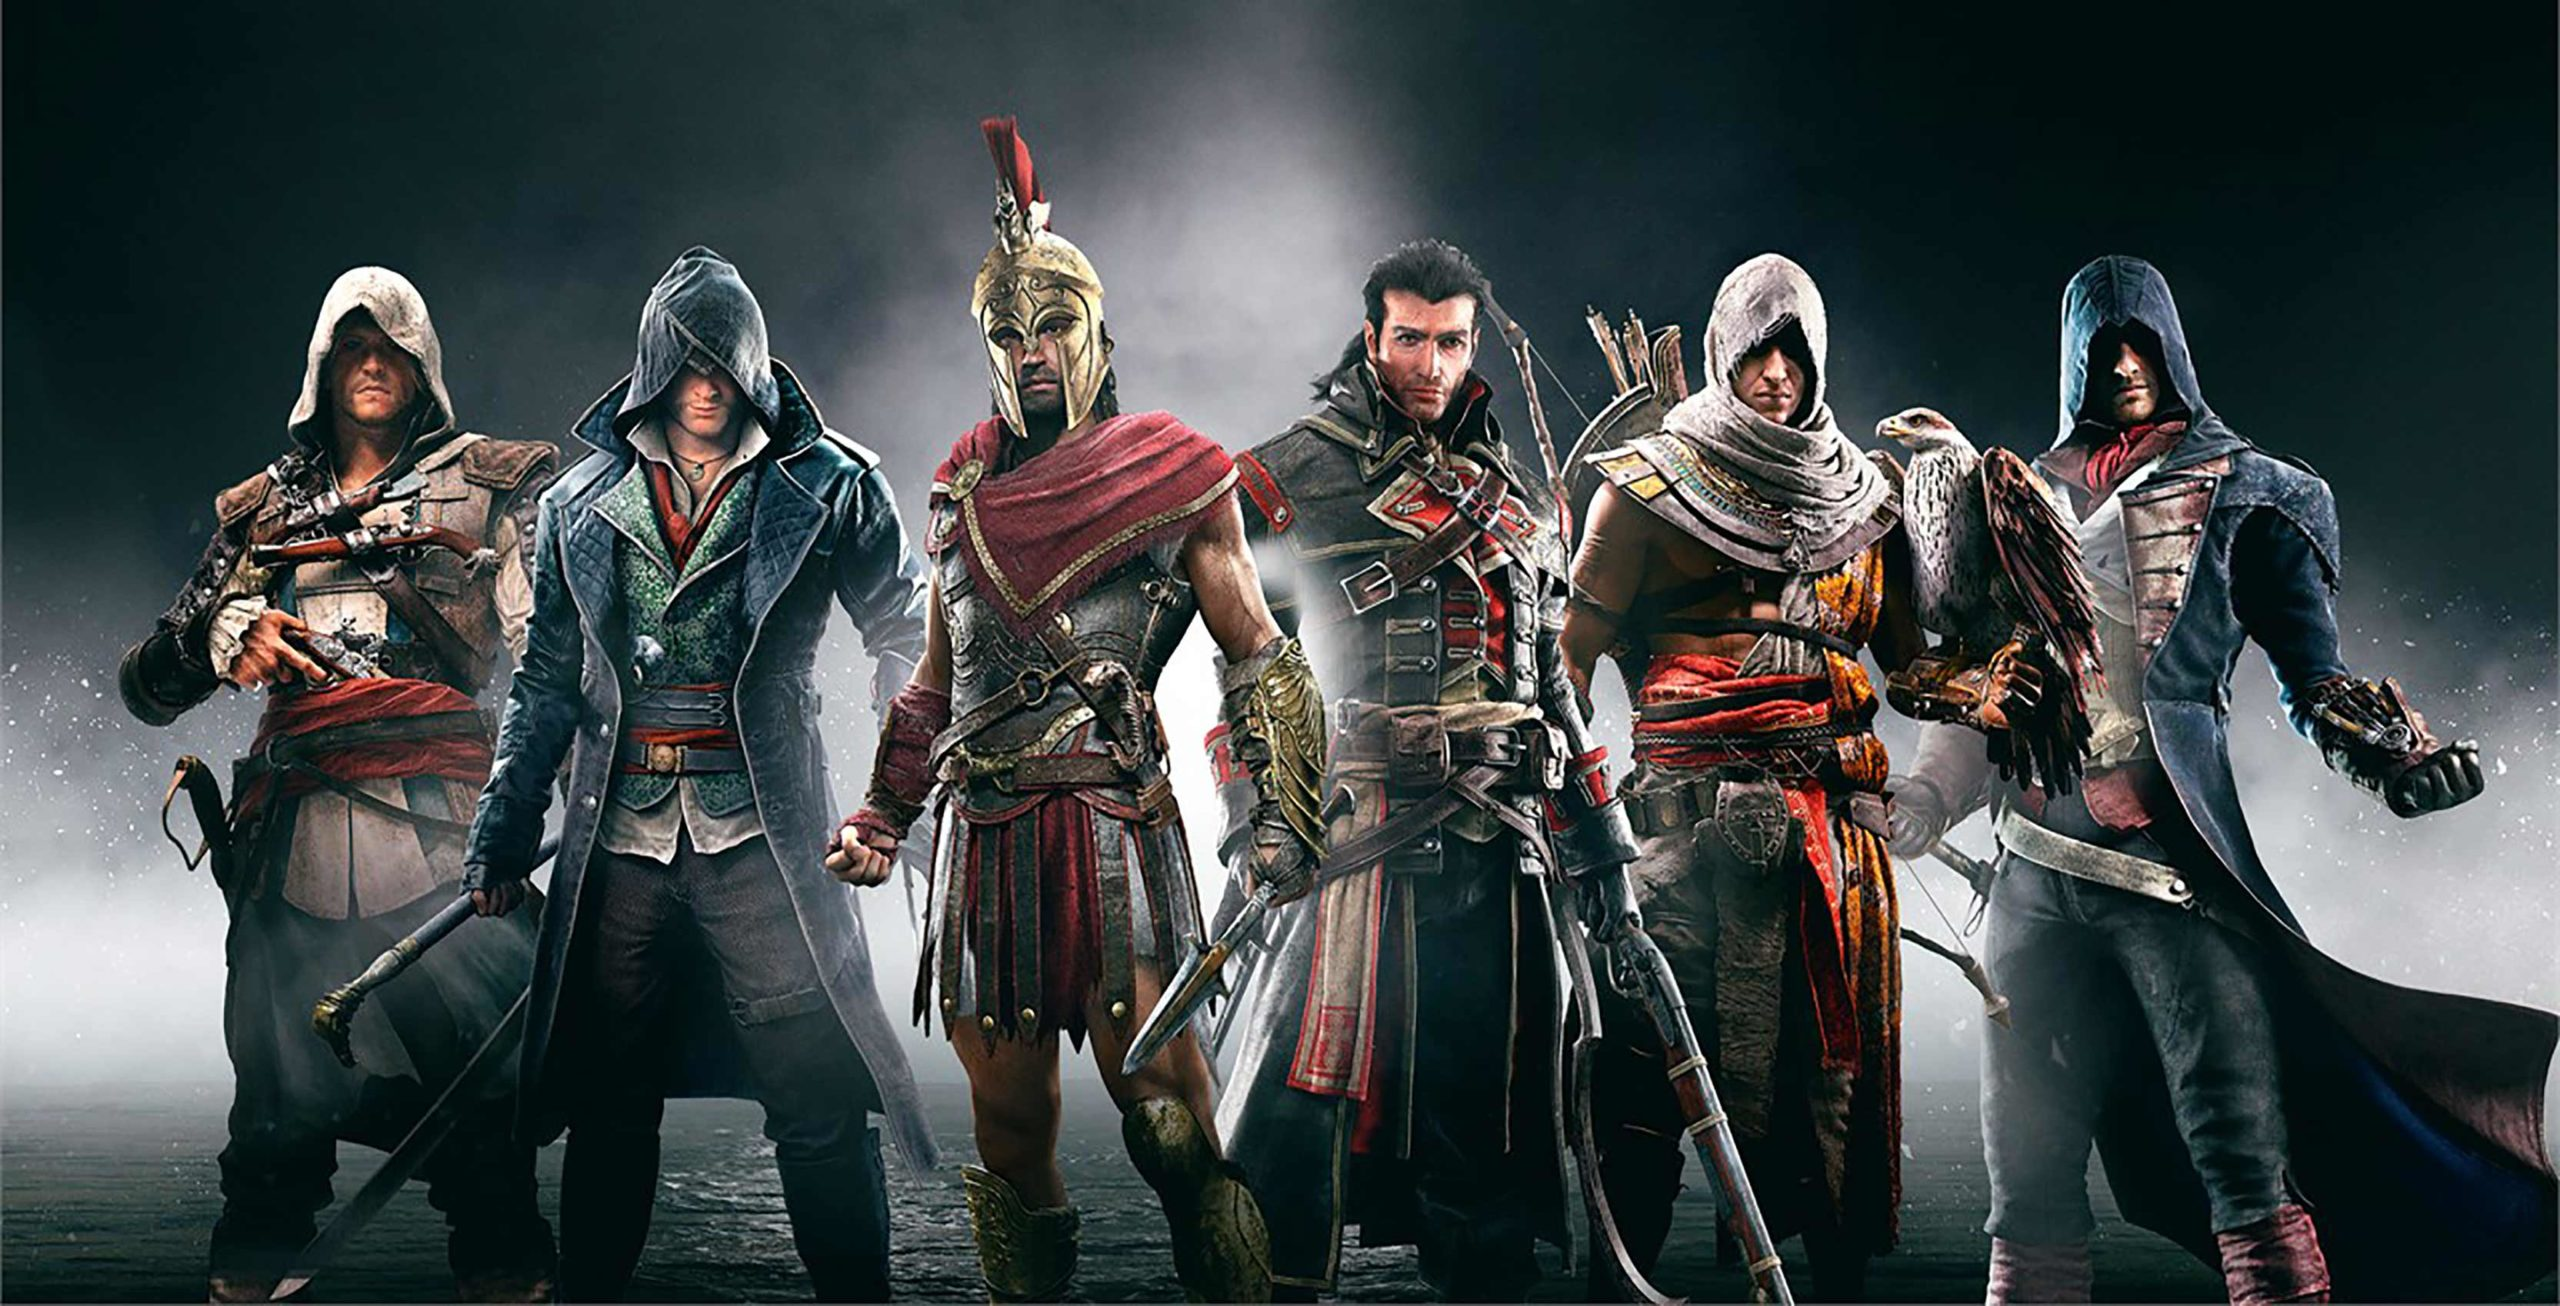 Ubisoft S 2020 Assassin S Creed Rumoured To Be A Cross Gen Co Op